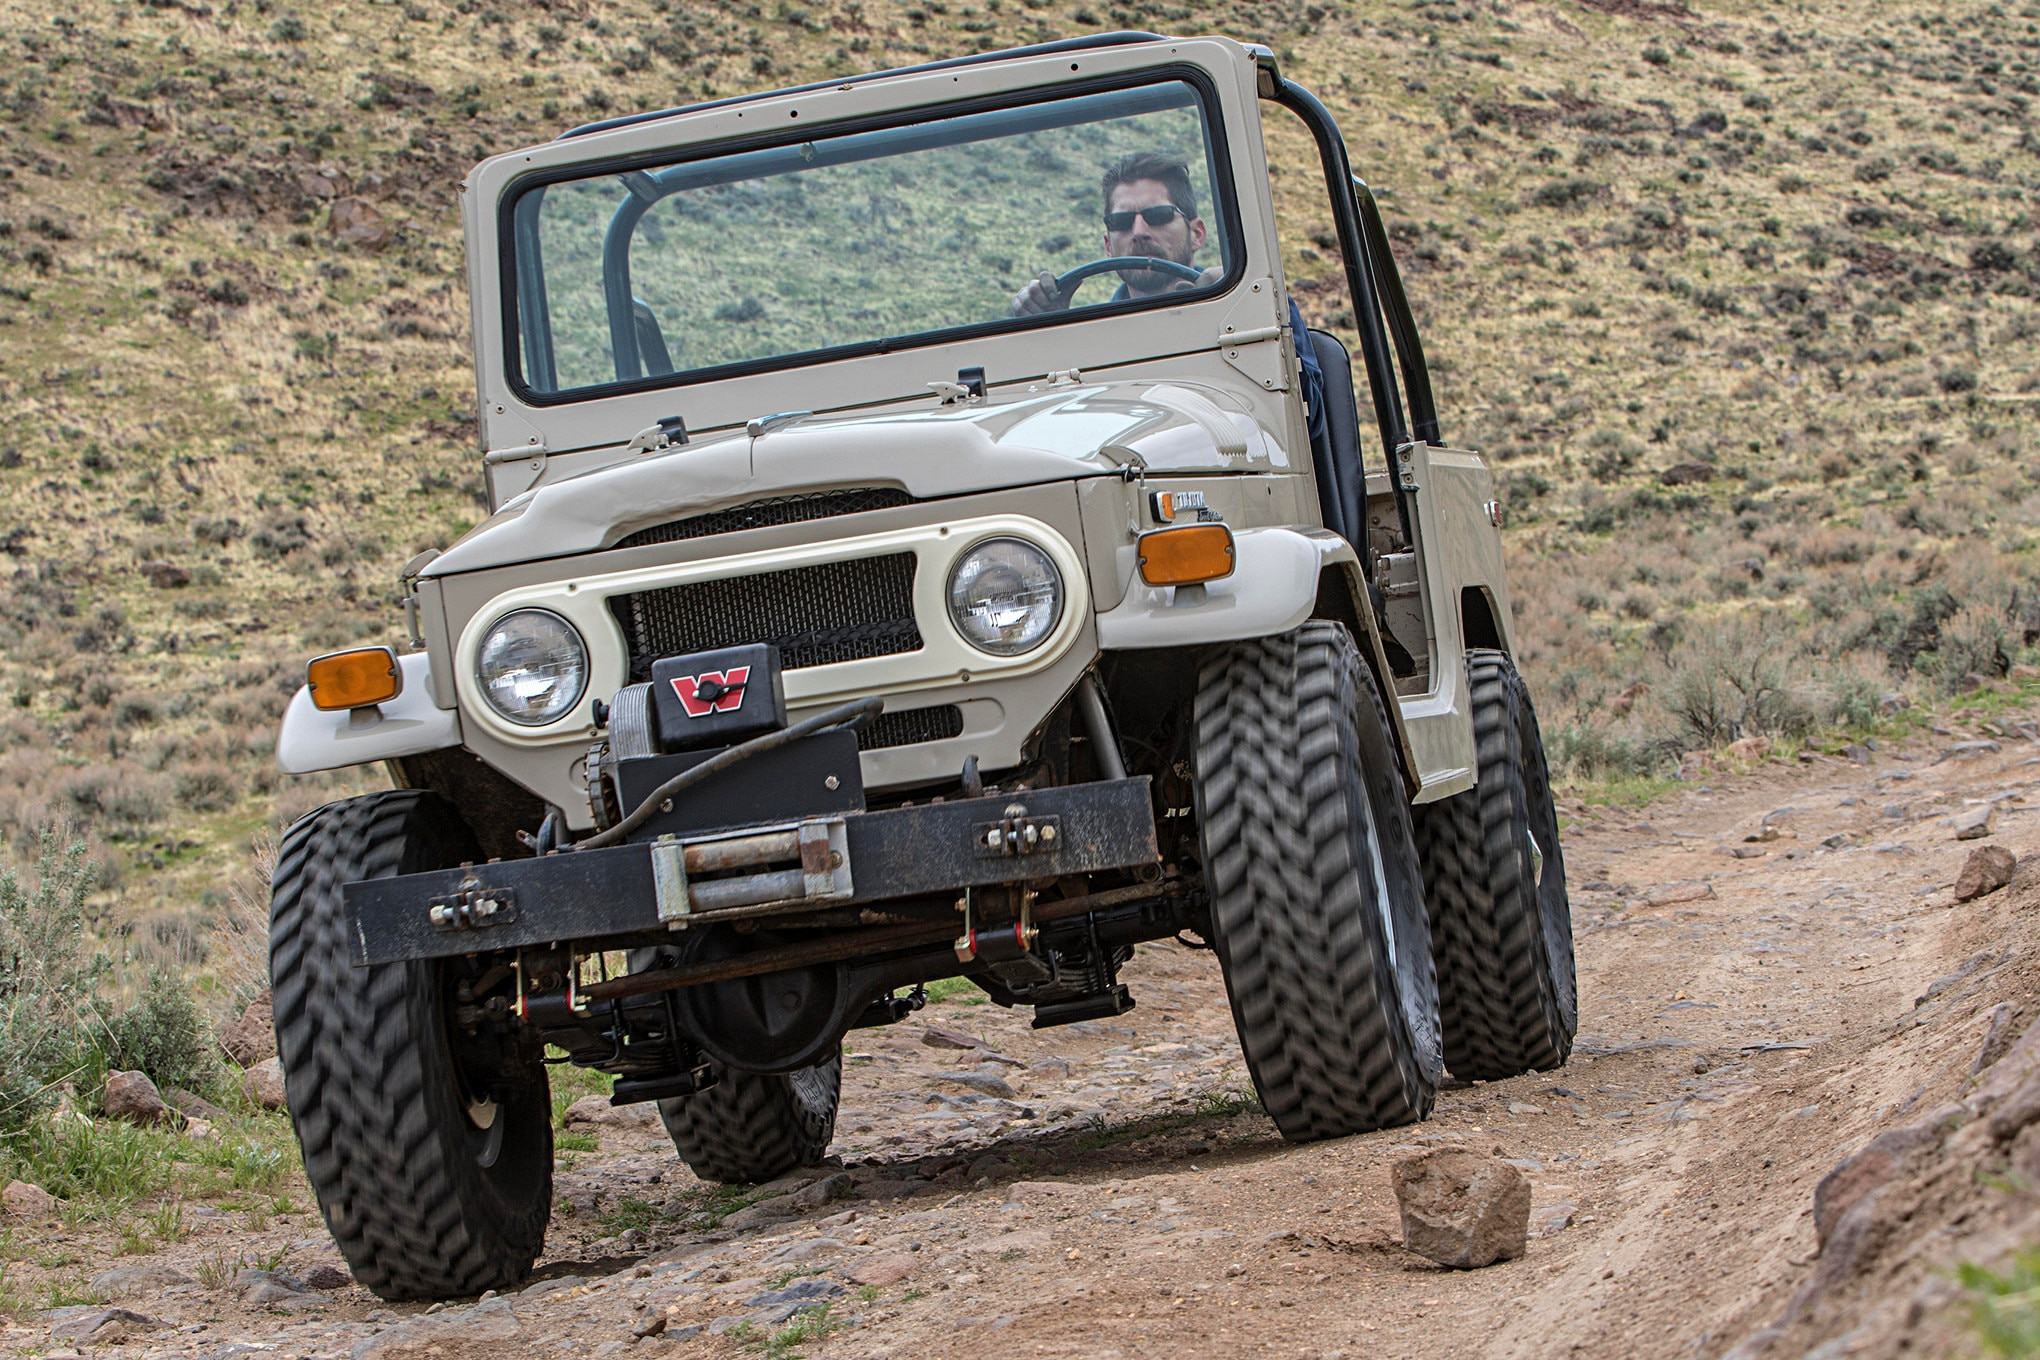 fj40 lead photo